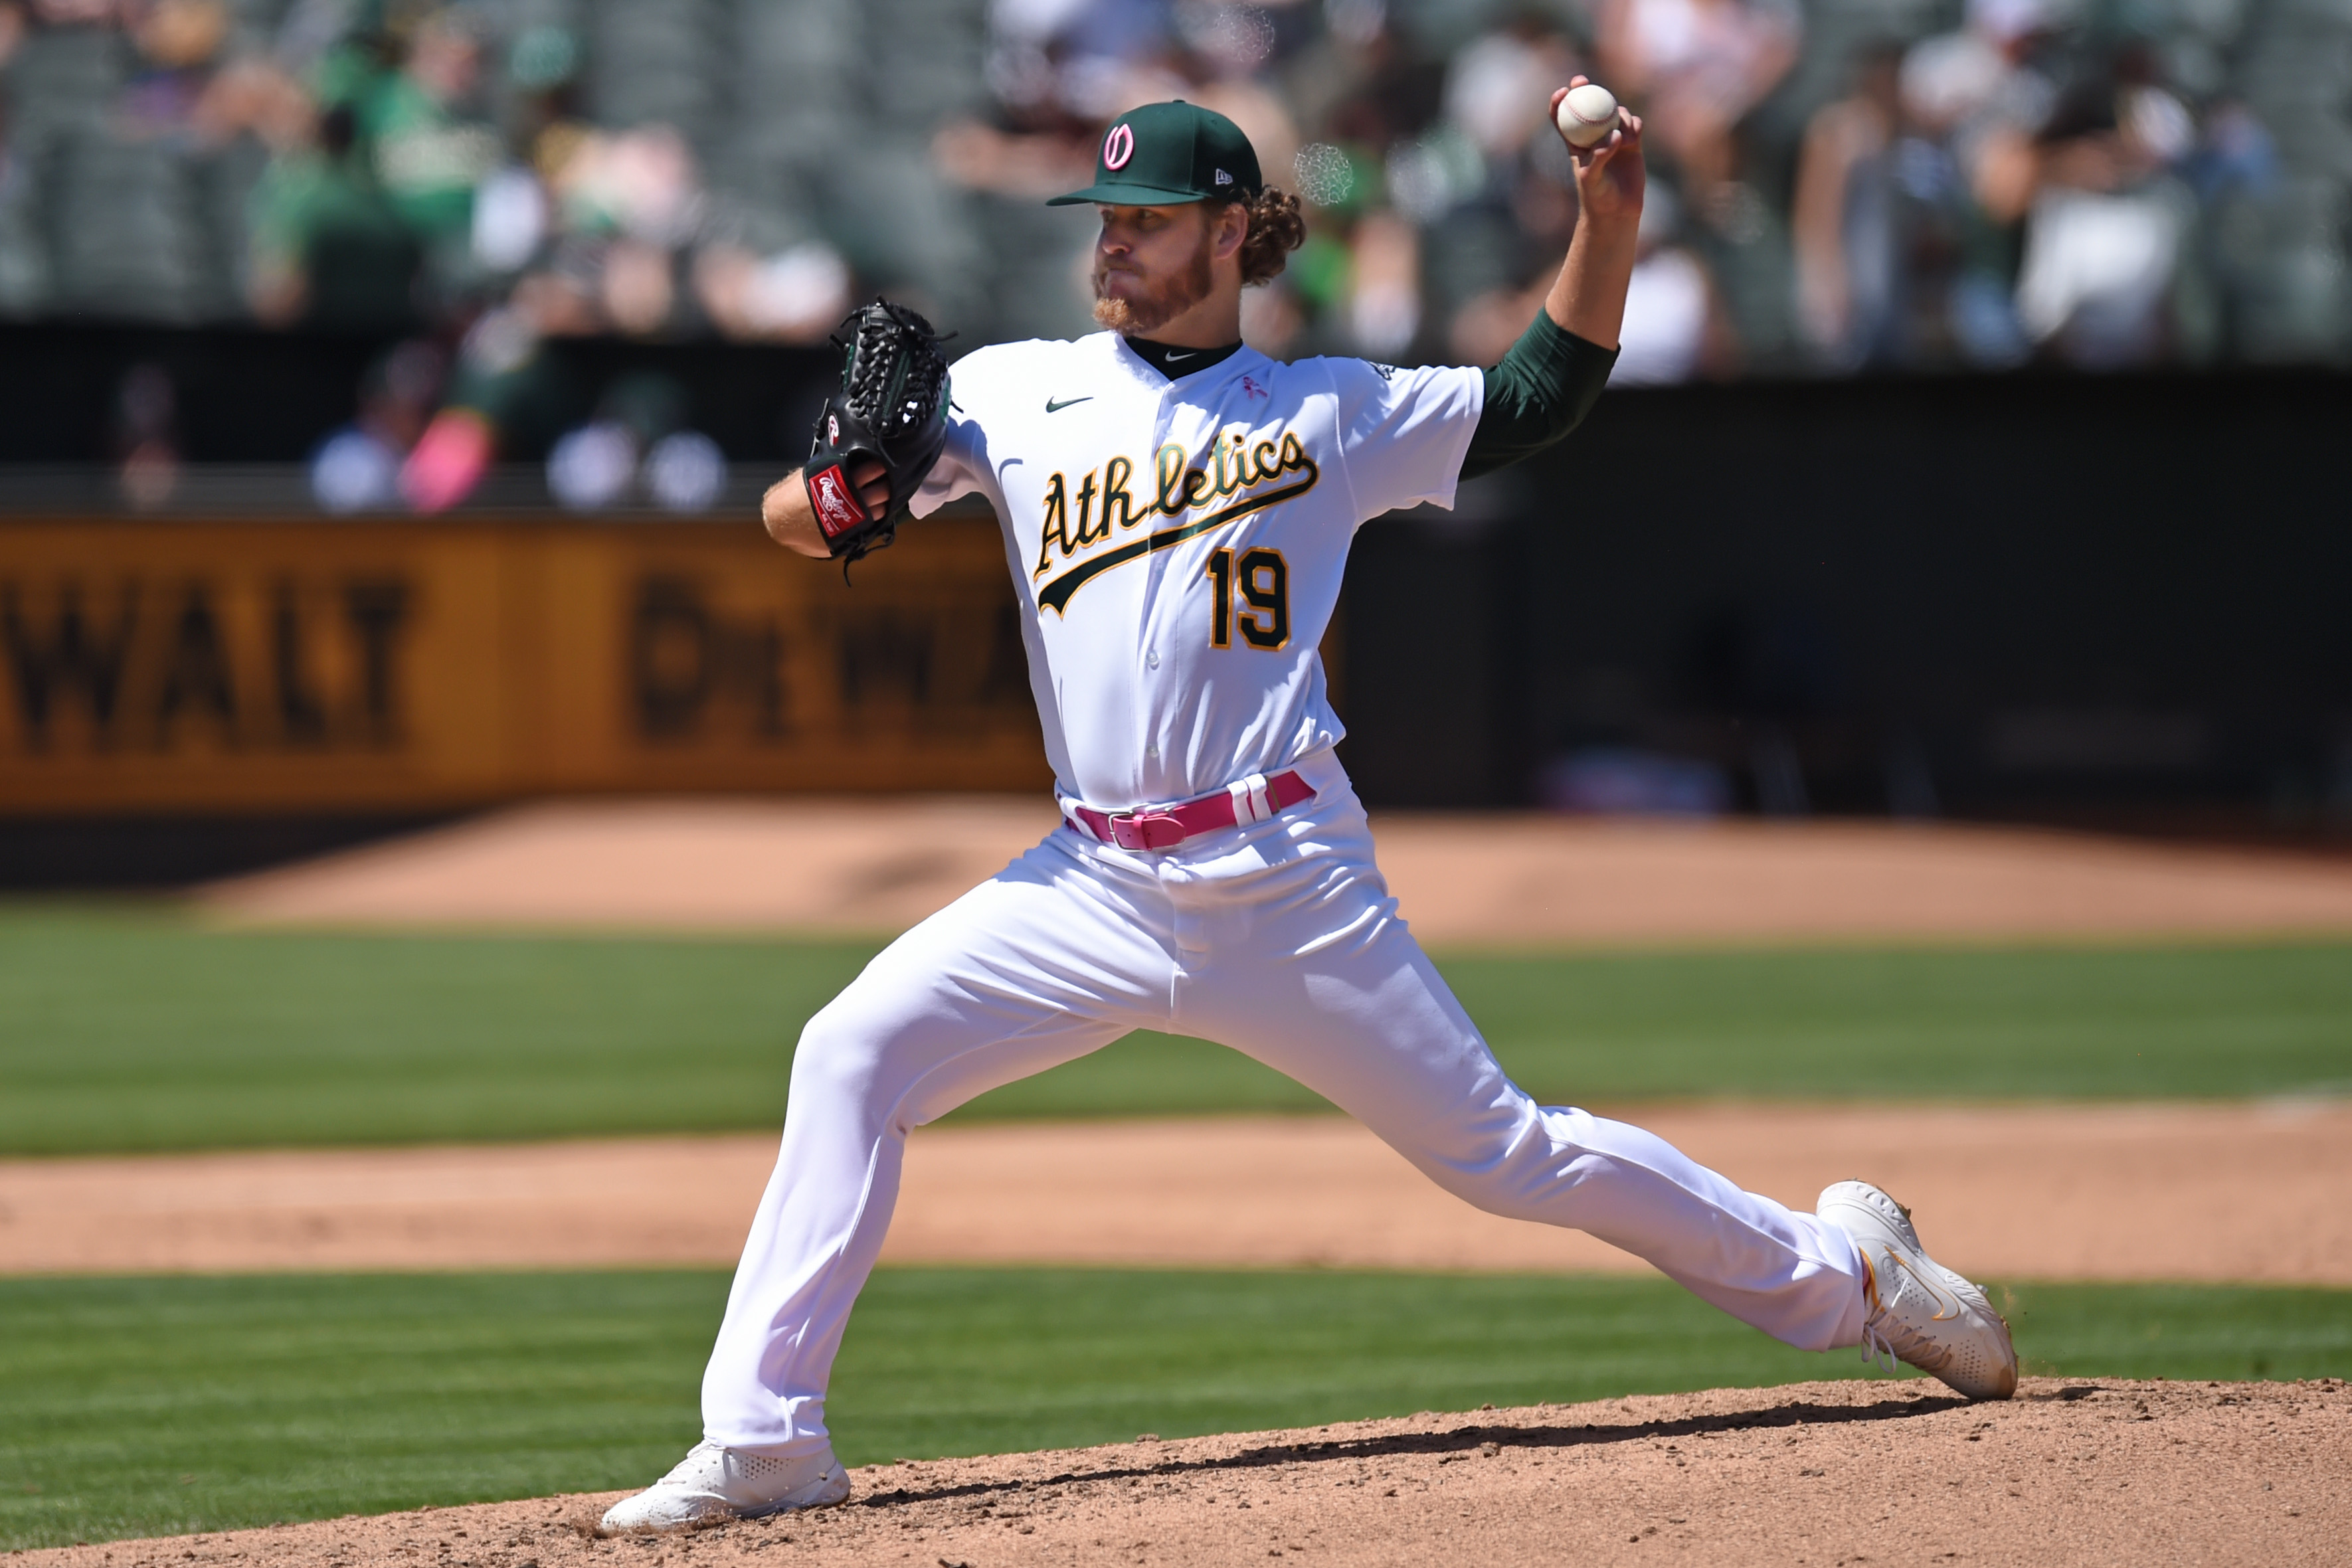 A's can't overcome key mistakes in 4-3 loss to Tampa Bay